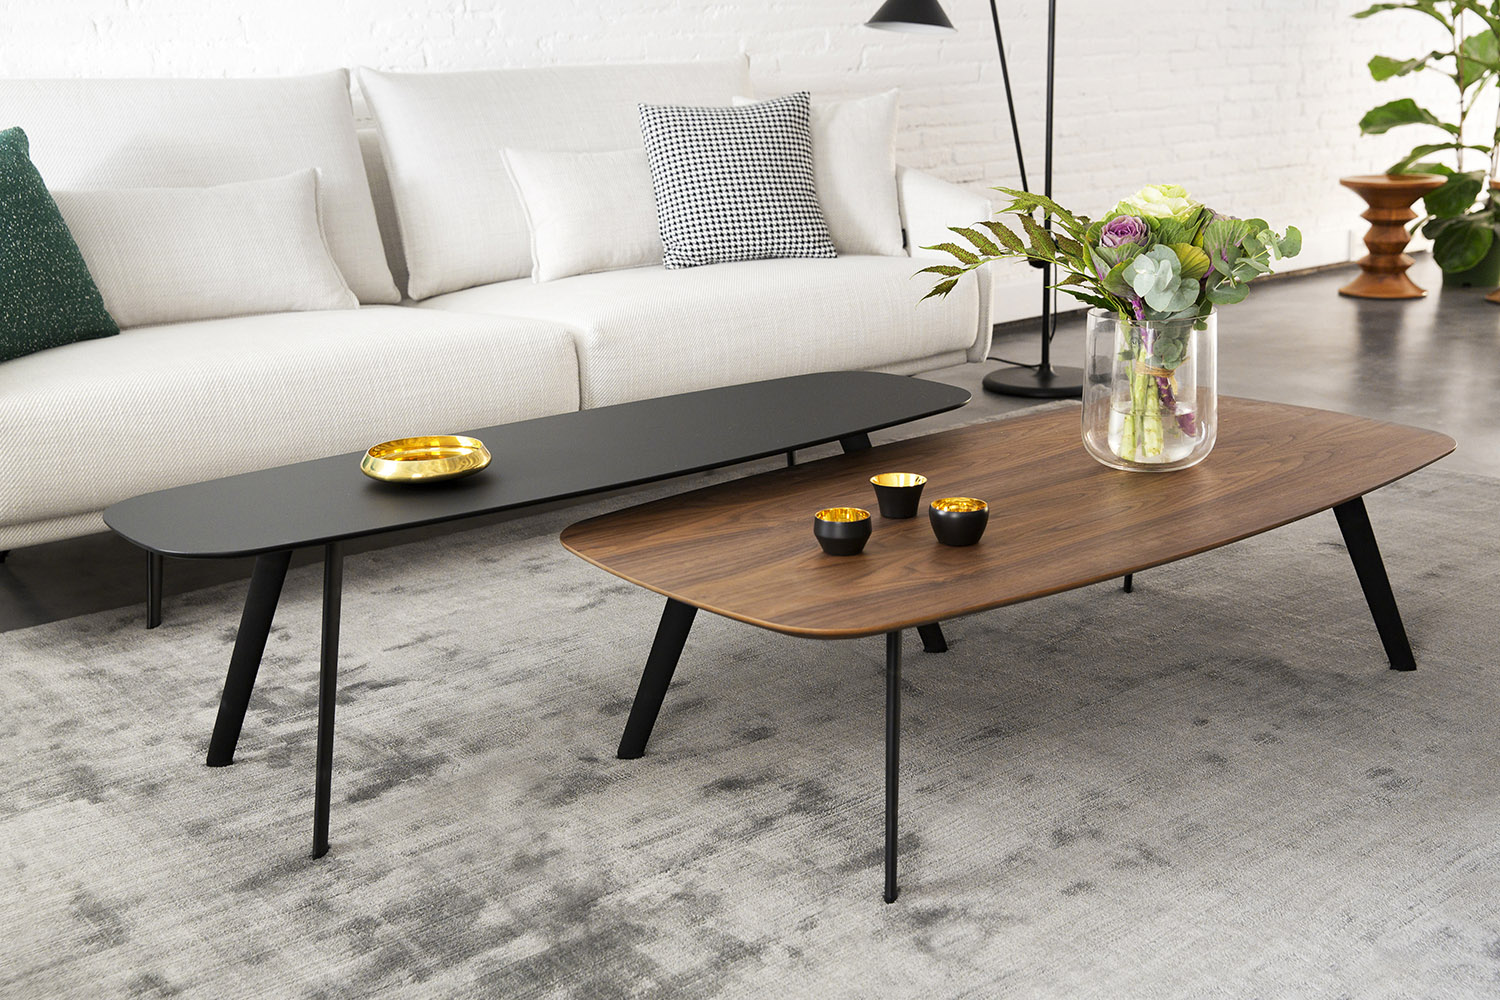 Crashglas Couchtisch Stua Solapa Coffee Table